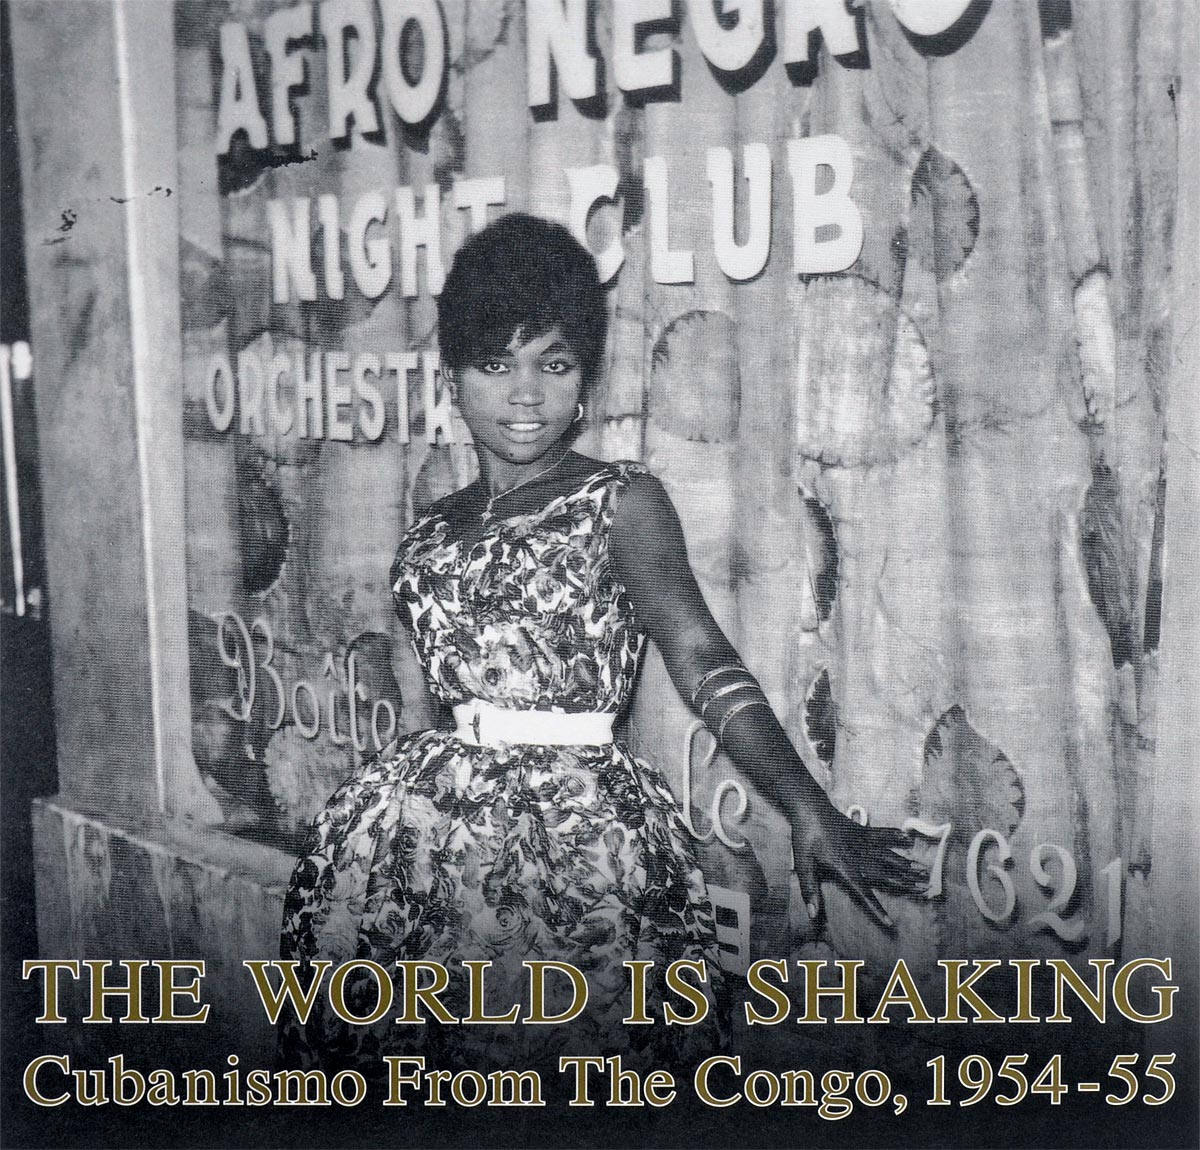 The World Is Shaking. Cubanismo From The Congo, 1954-55 (2 LP) джорджи фэйм georgie fame the whole world's shaking the groundbreaking albums 1963 1966 4 lp